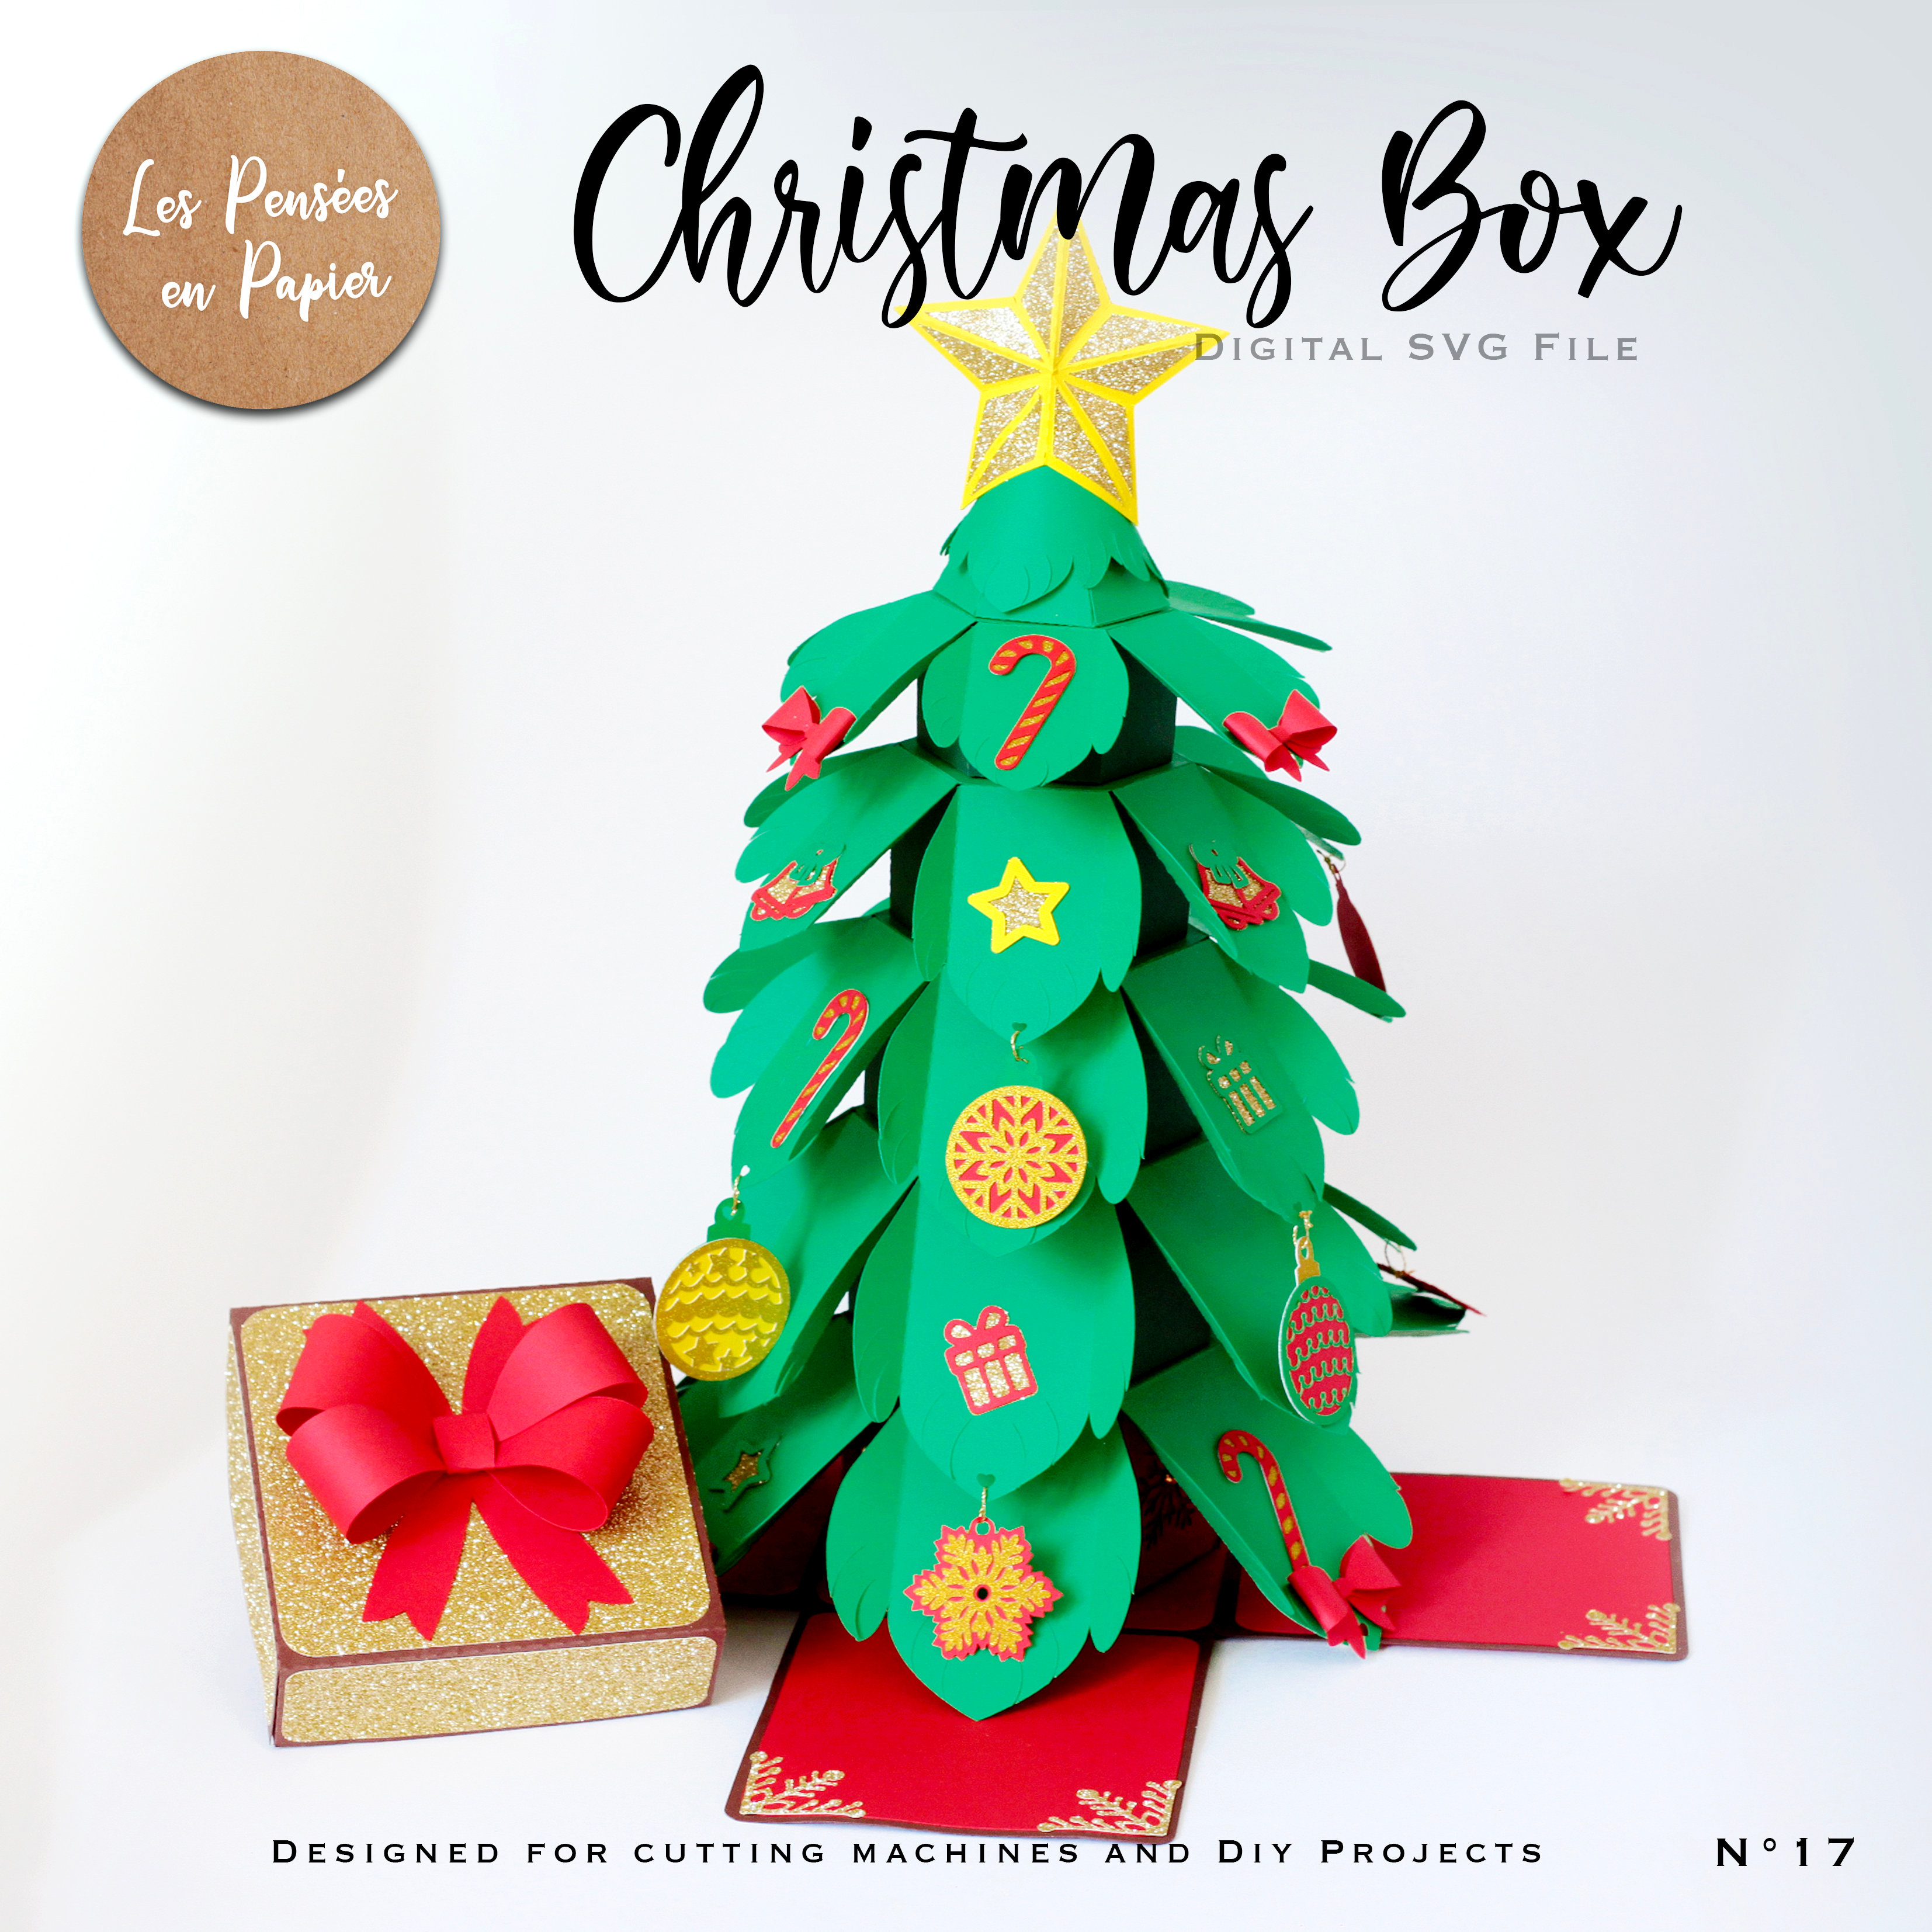 You can use a variety of paper and cardstock to make paper christmas ornaments. Christmas Box Svg Vertical Tree Explosion Lespenseesenpapier